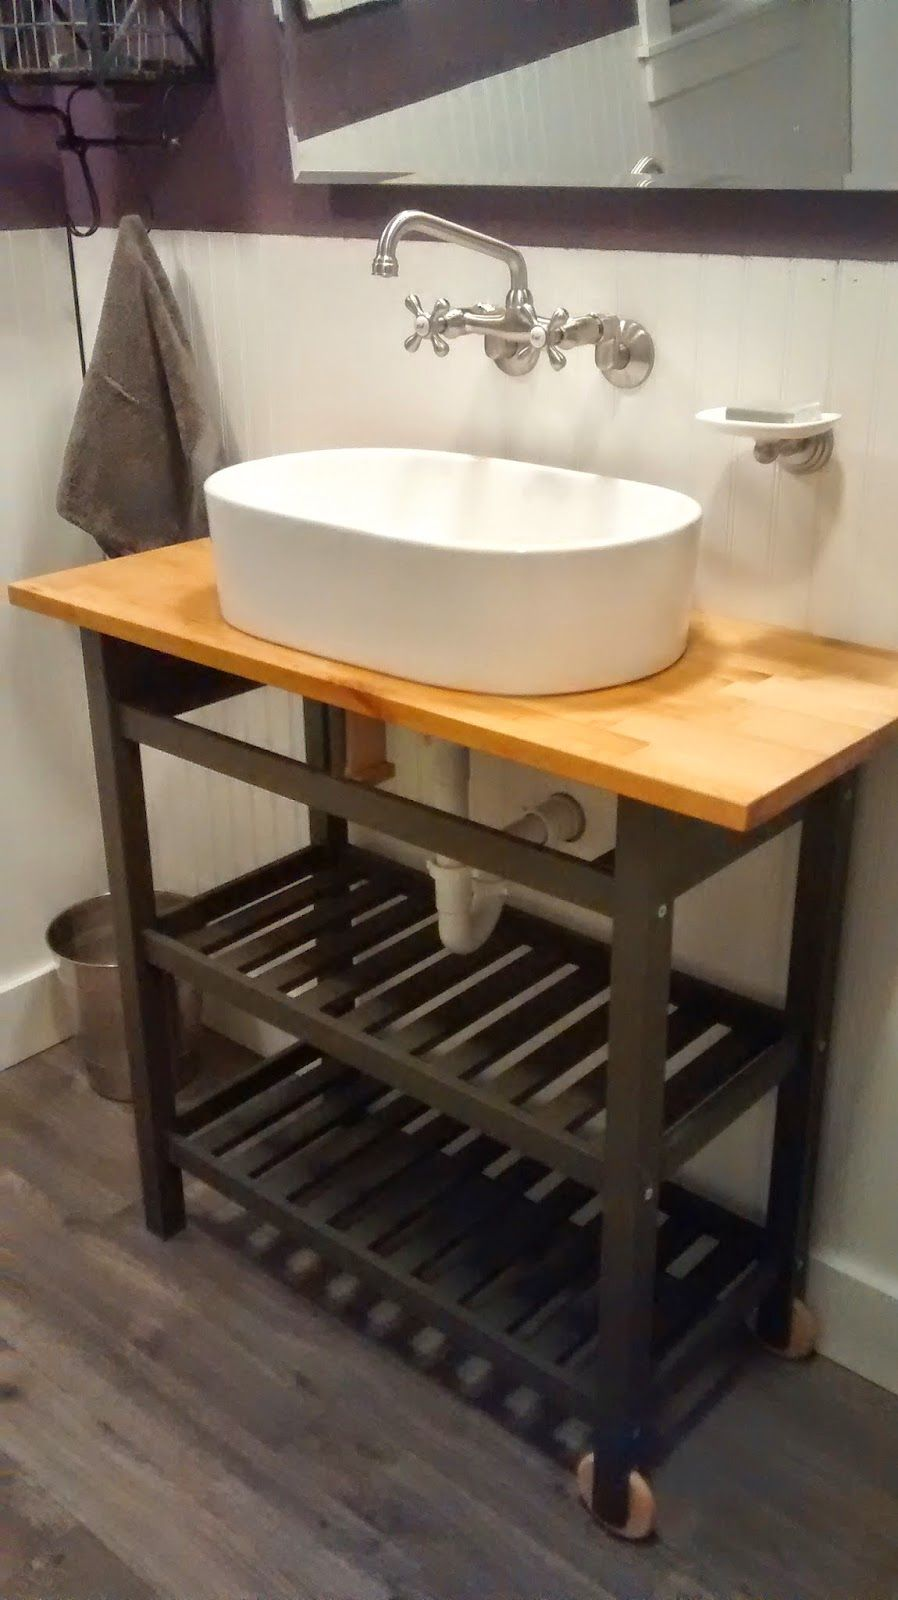 This Site Explains How To Make The Kitchen Cart Into A Bathroom